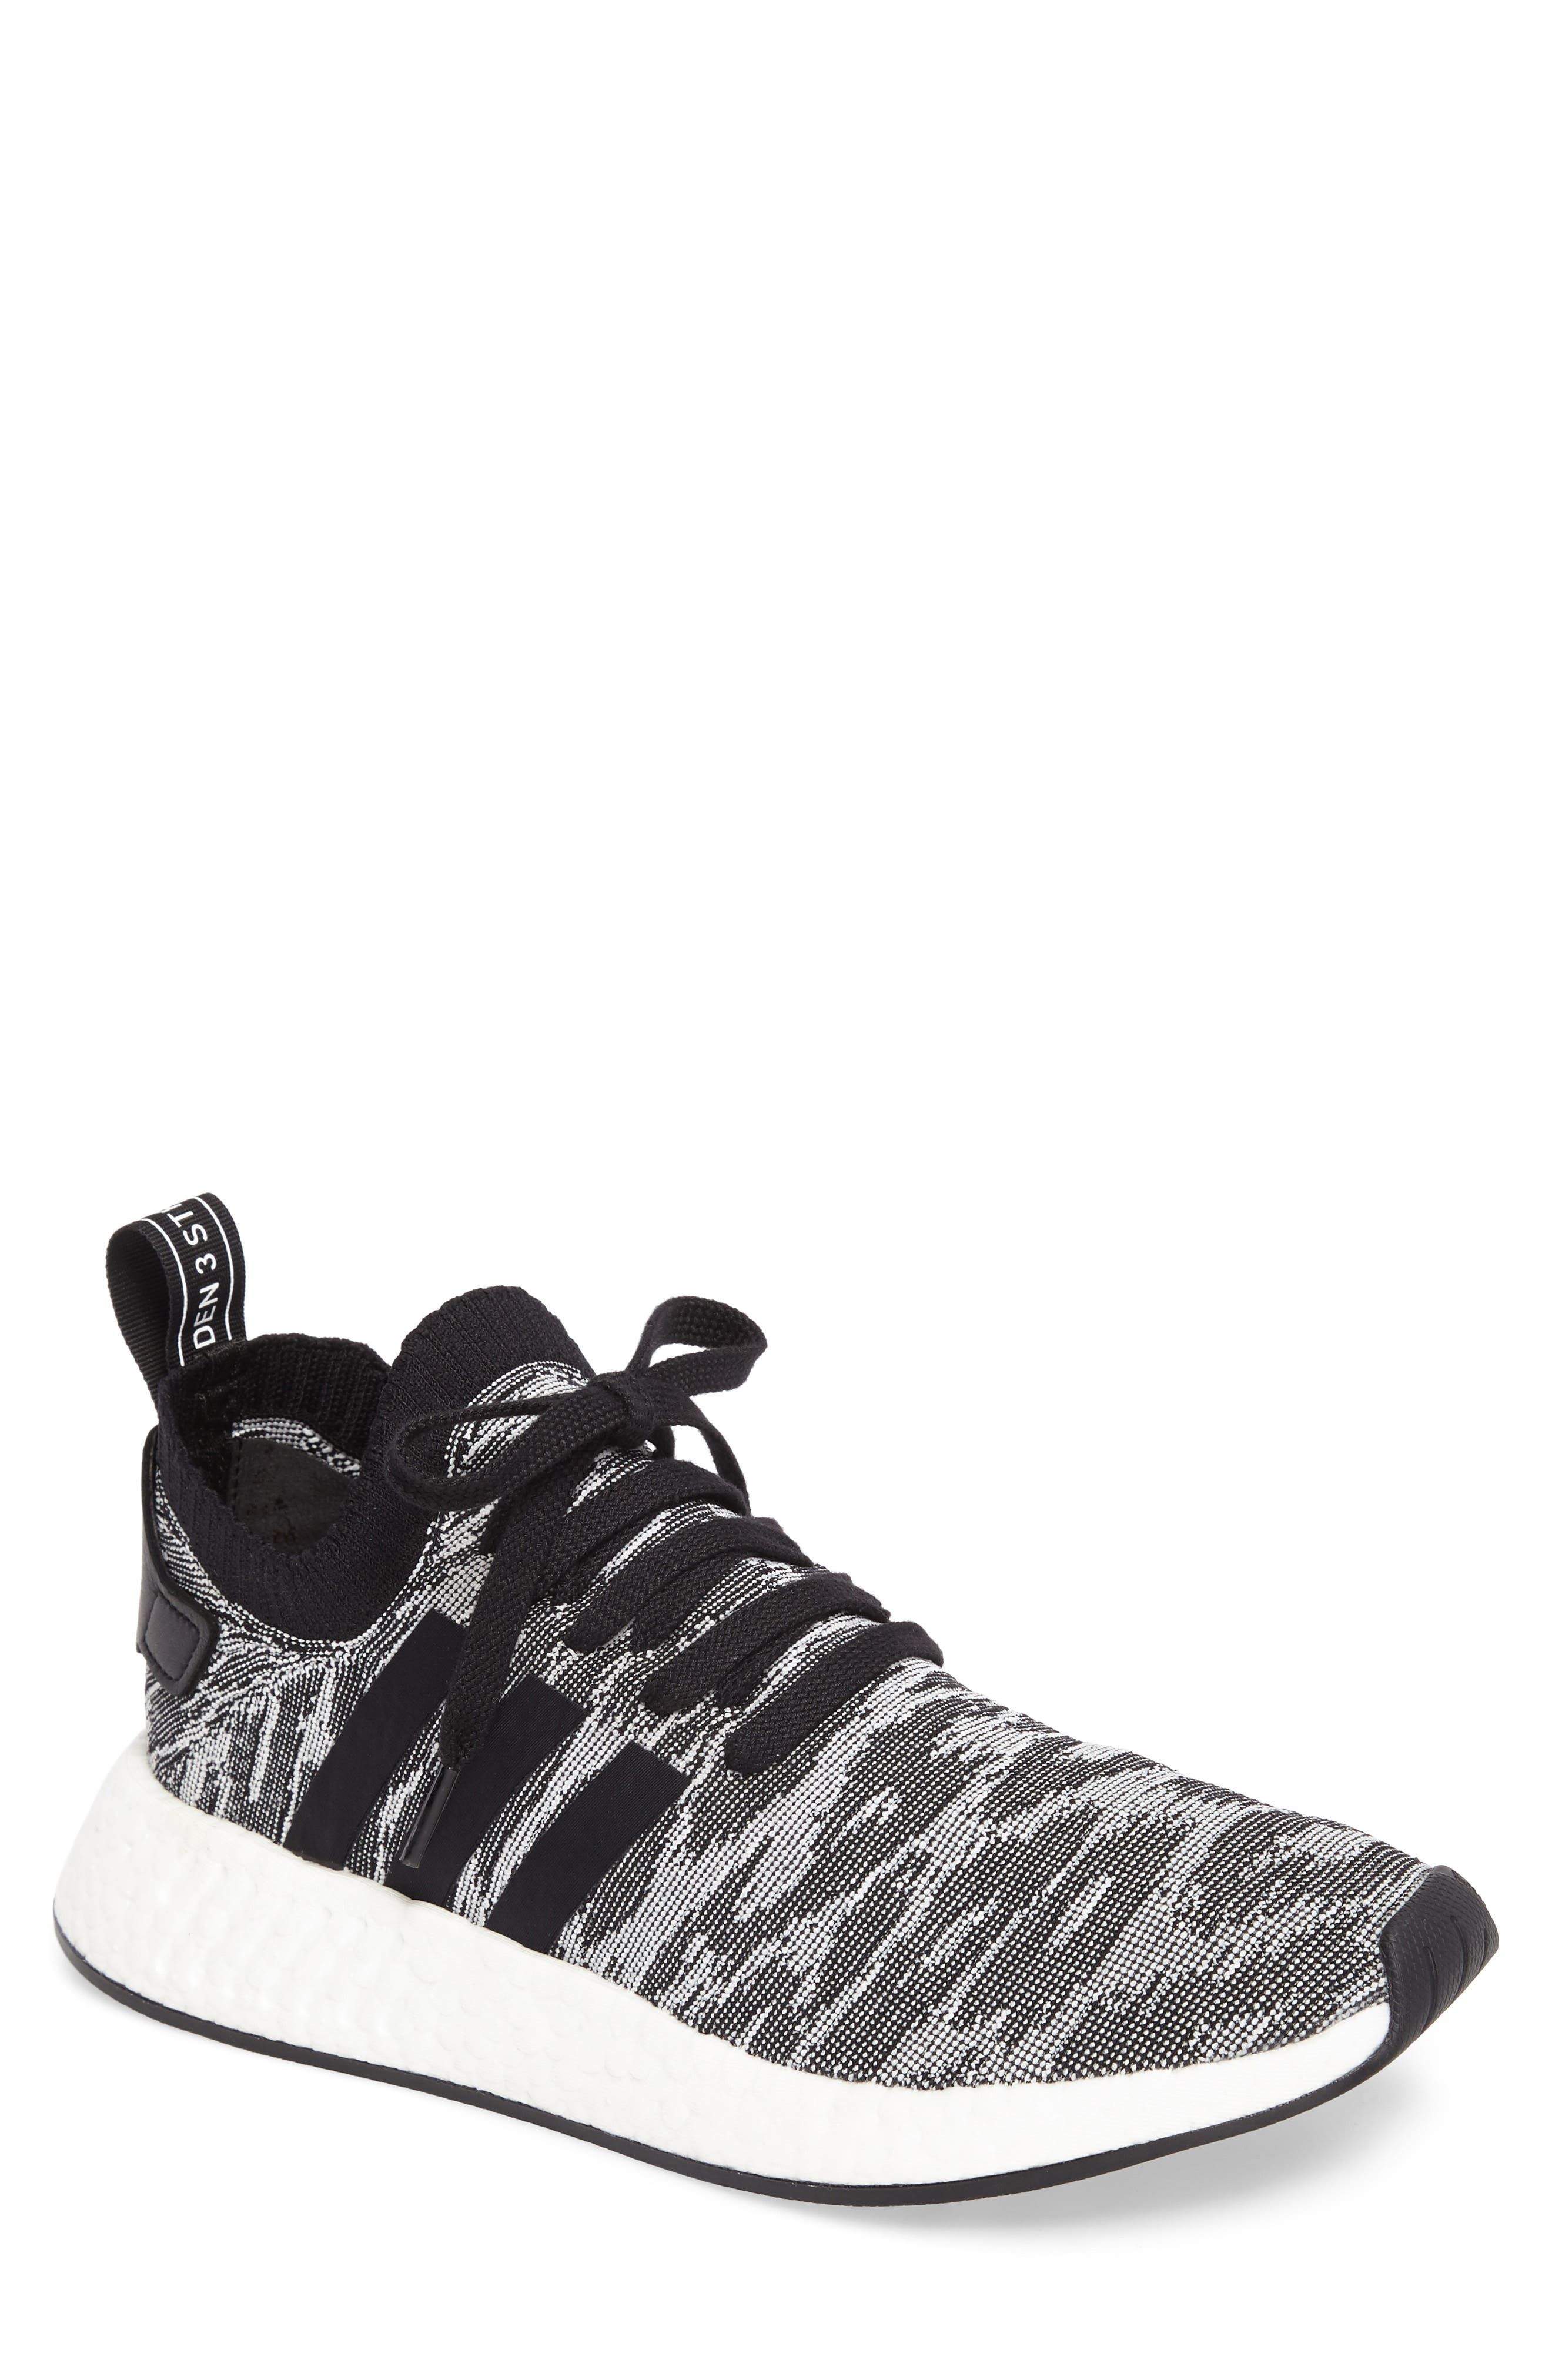 NMD R2 Primeknit Running Shoe,                         Main,                         color, 002